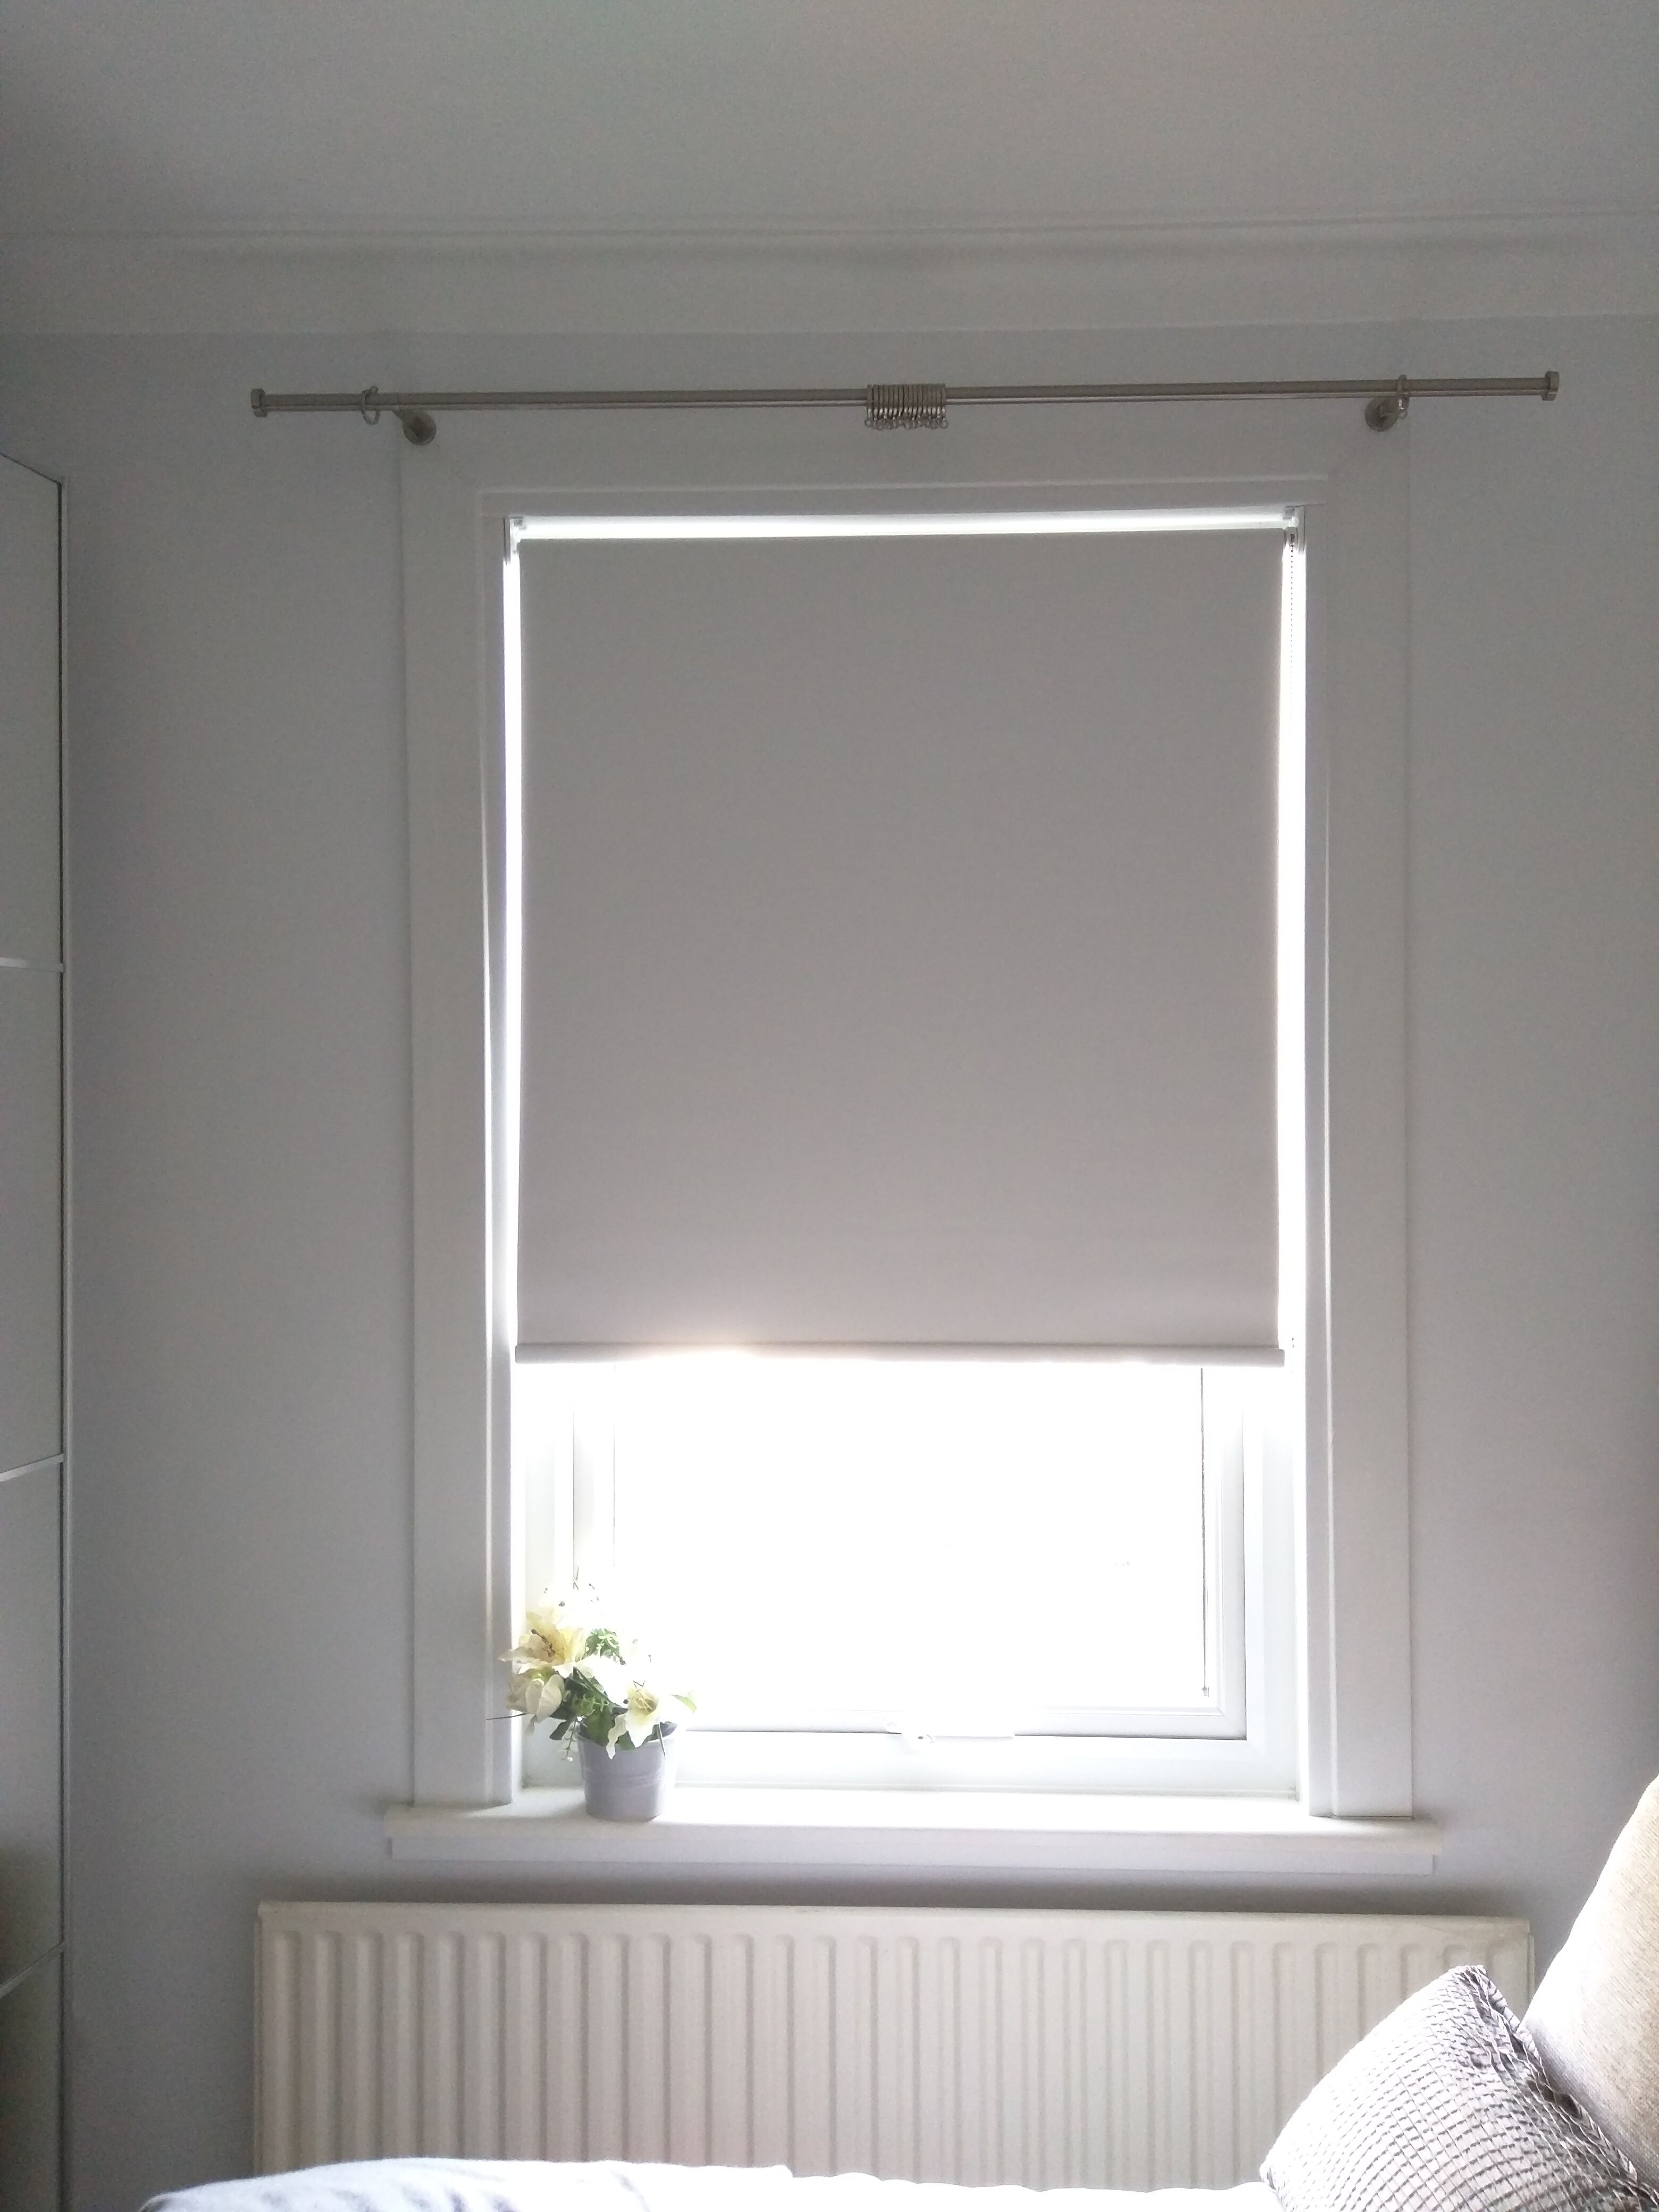 Blackout Roller Blind In Polar White Fitted To Bedroom